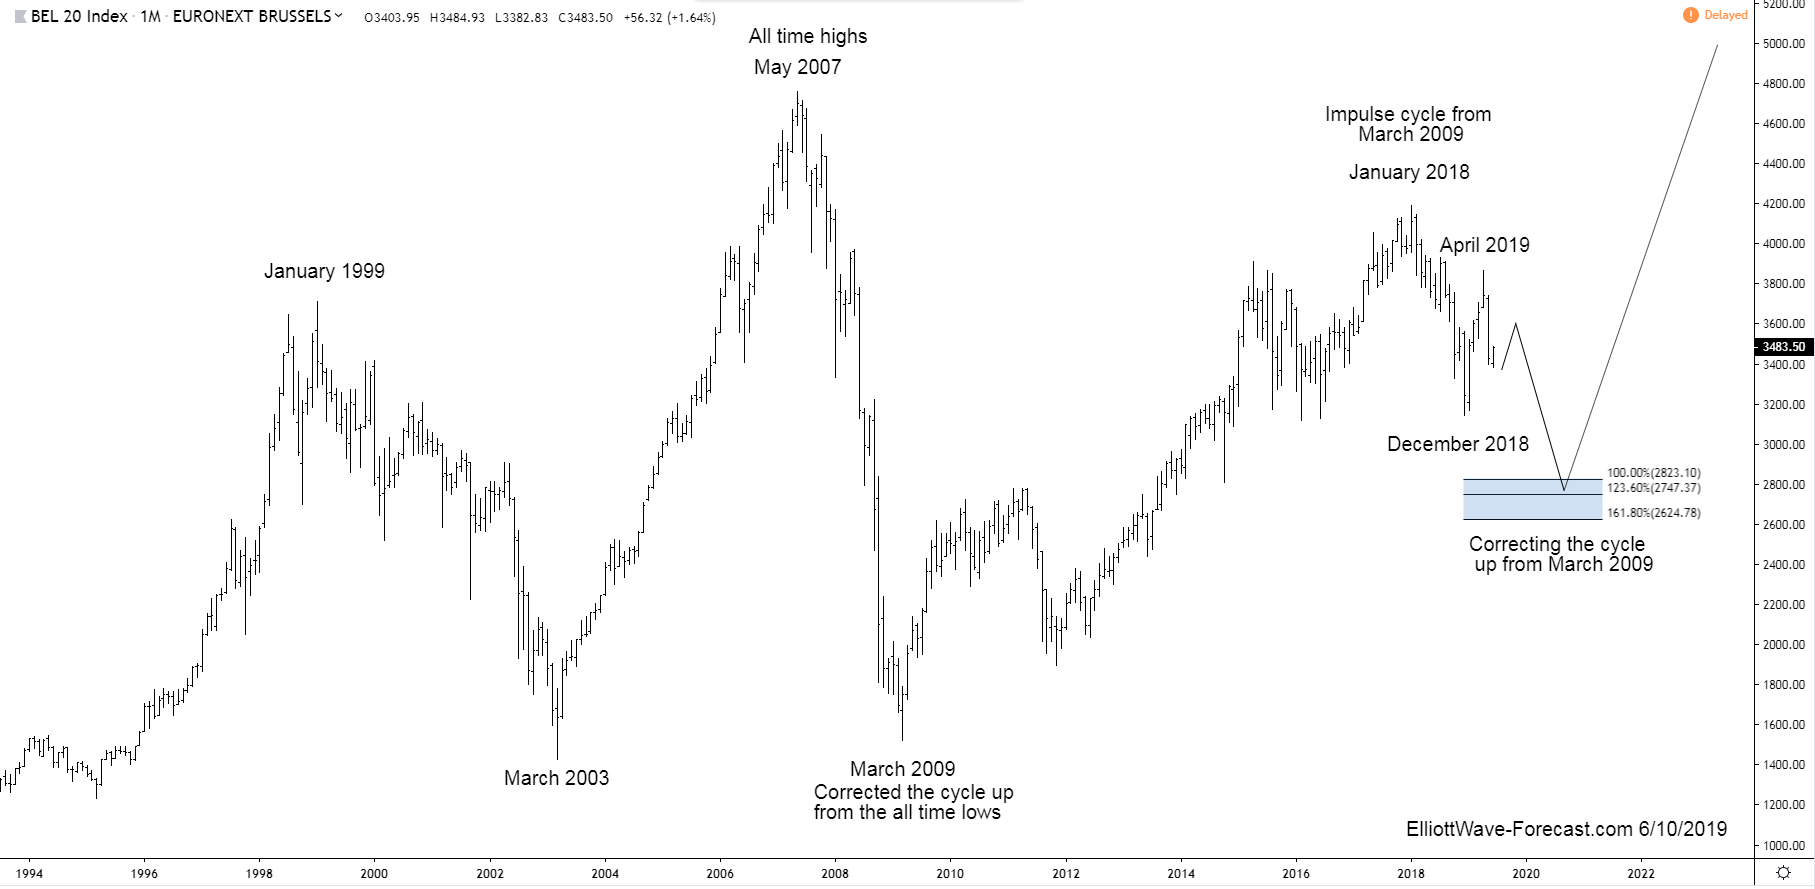 The BEL20 Index is Correcting the Cycle up from the 2009 Lows